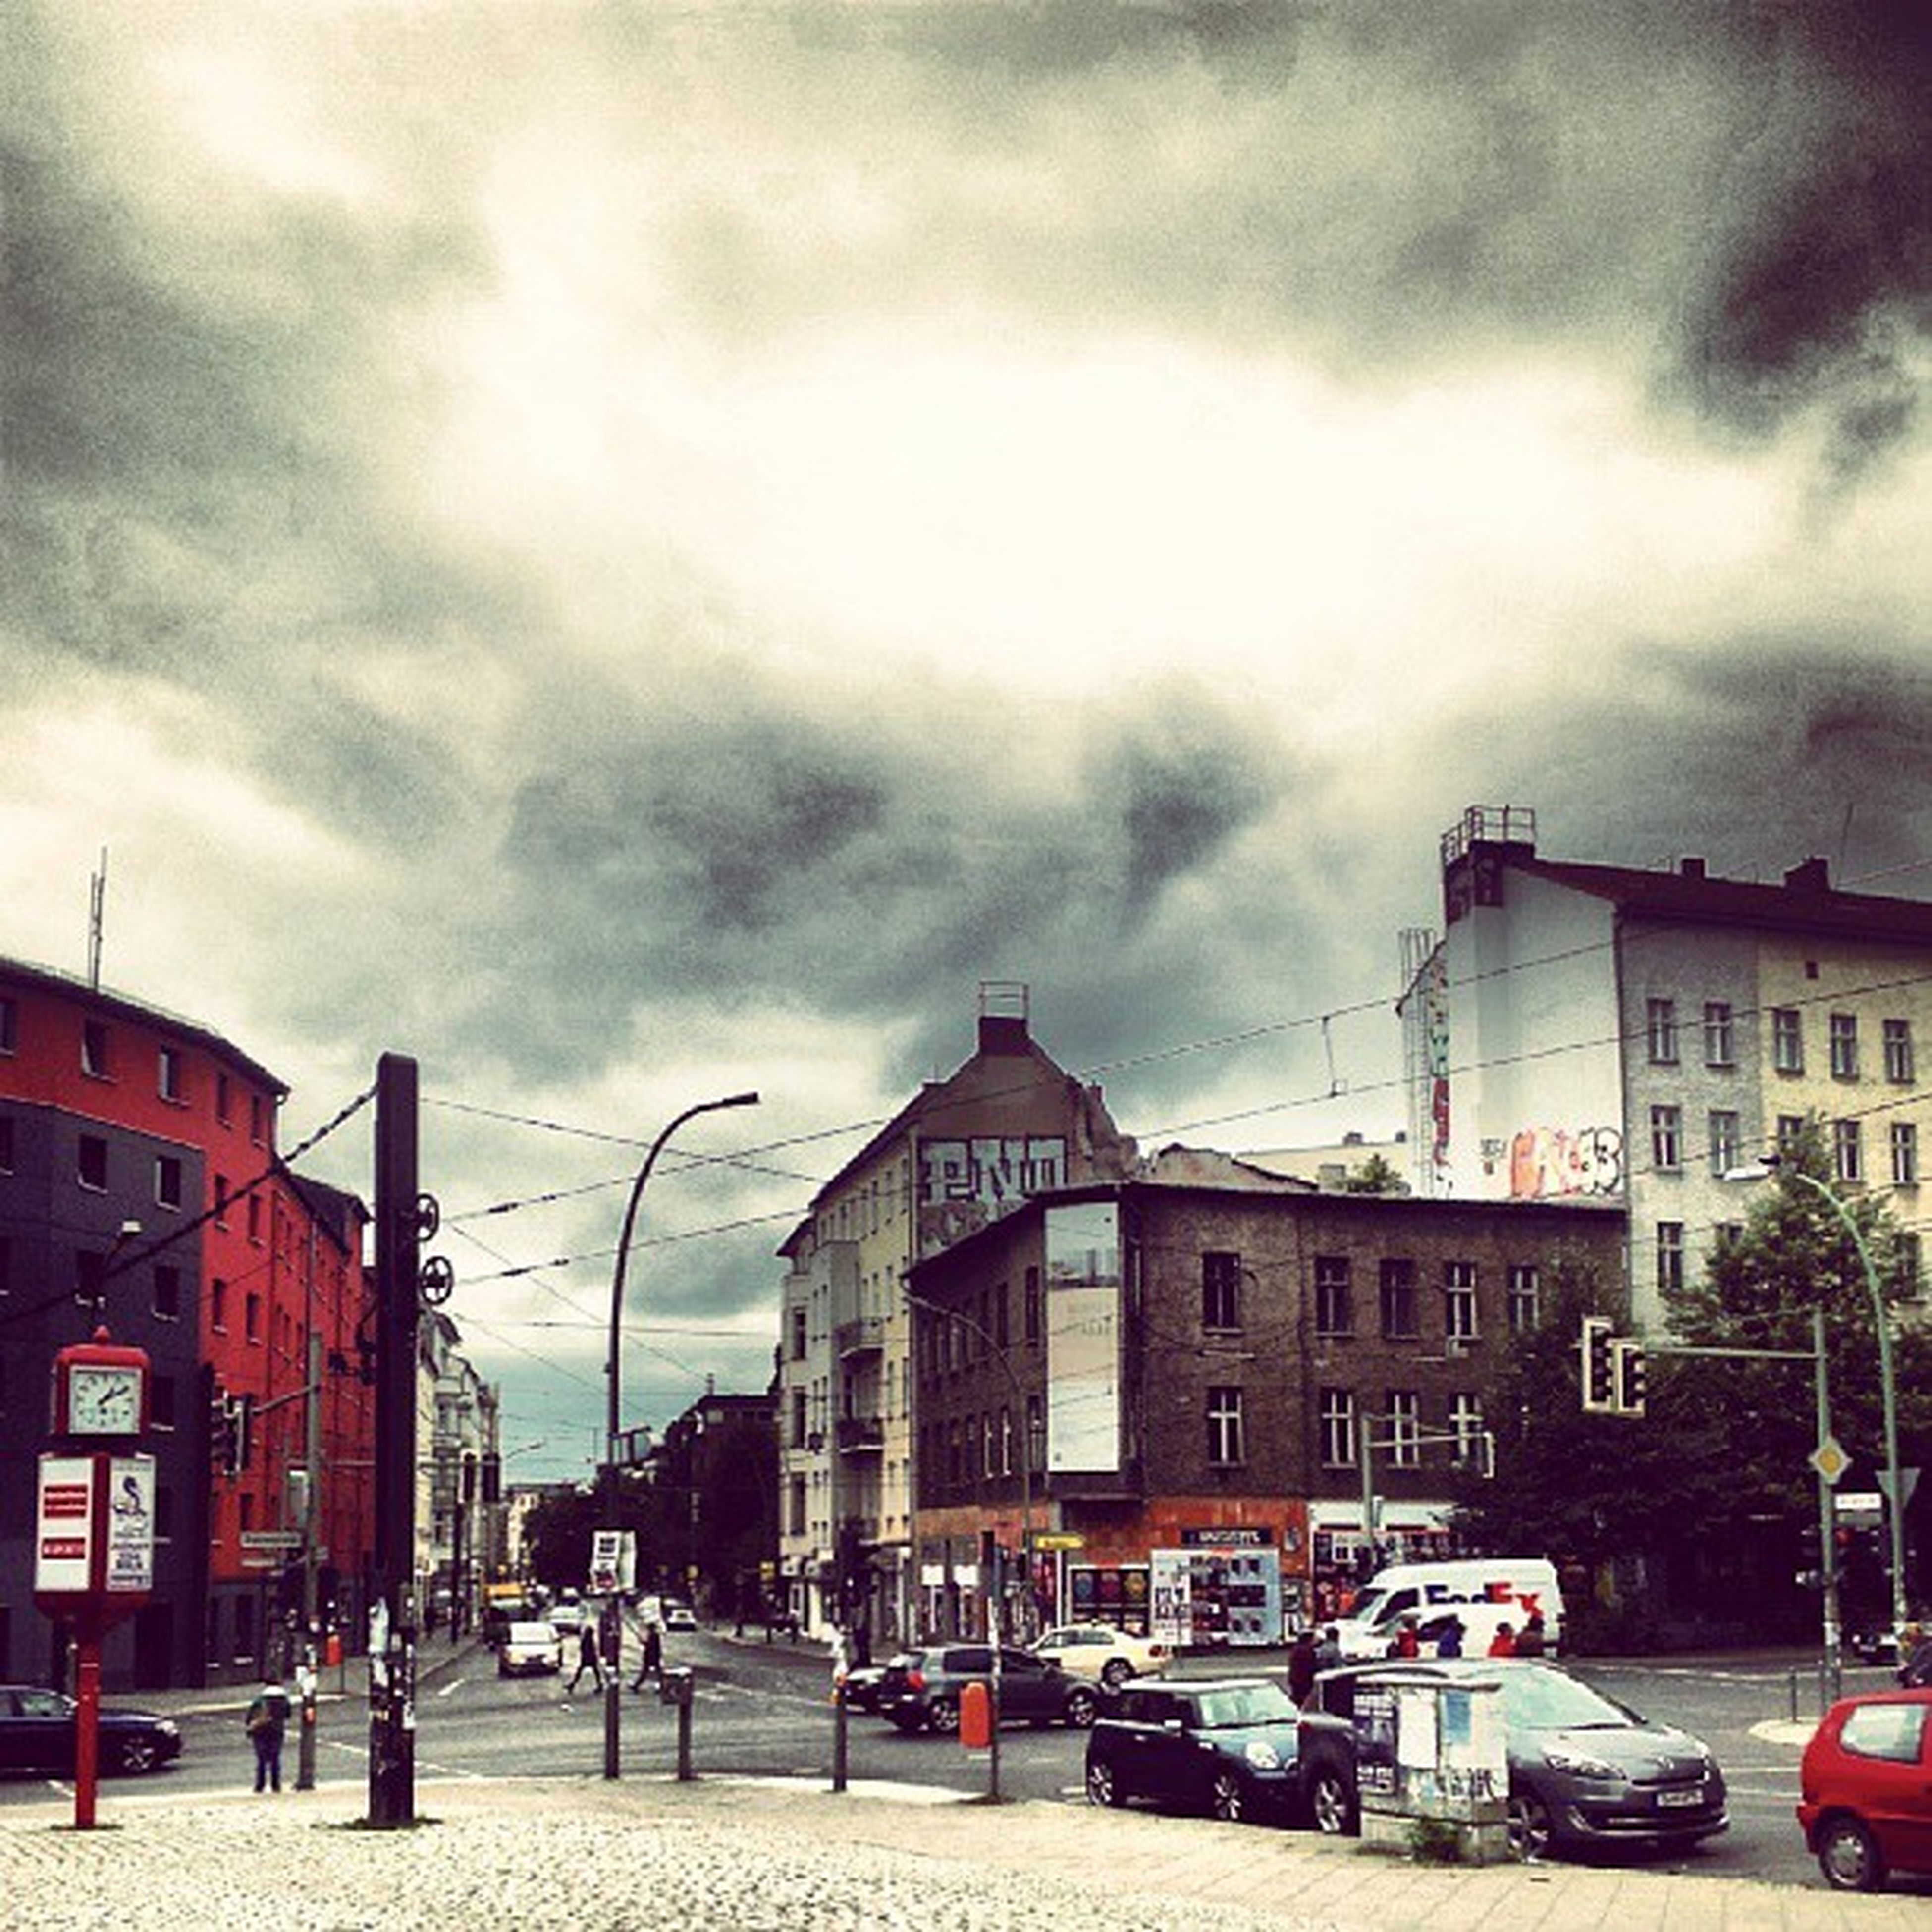 building exterior, architecture, built structure, sky, car, transportation, land vehicle, cloud - sky, street, mode of transport, cloudy, road, city, cloud, parking, street light, parked, residential building, house, incidental people